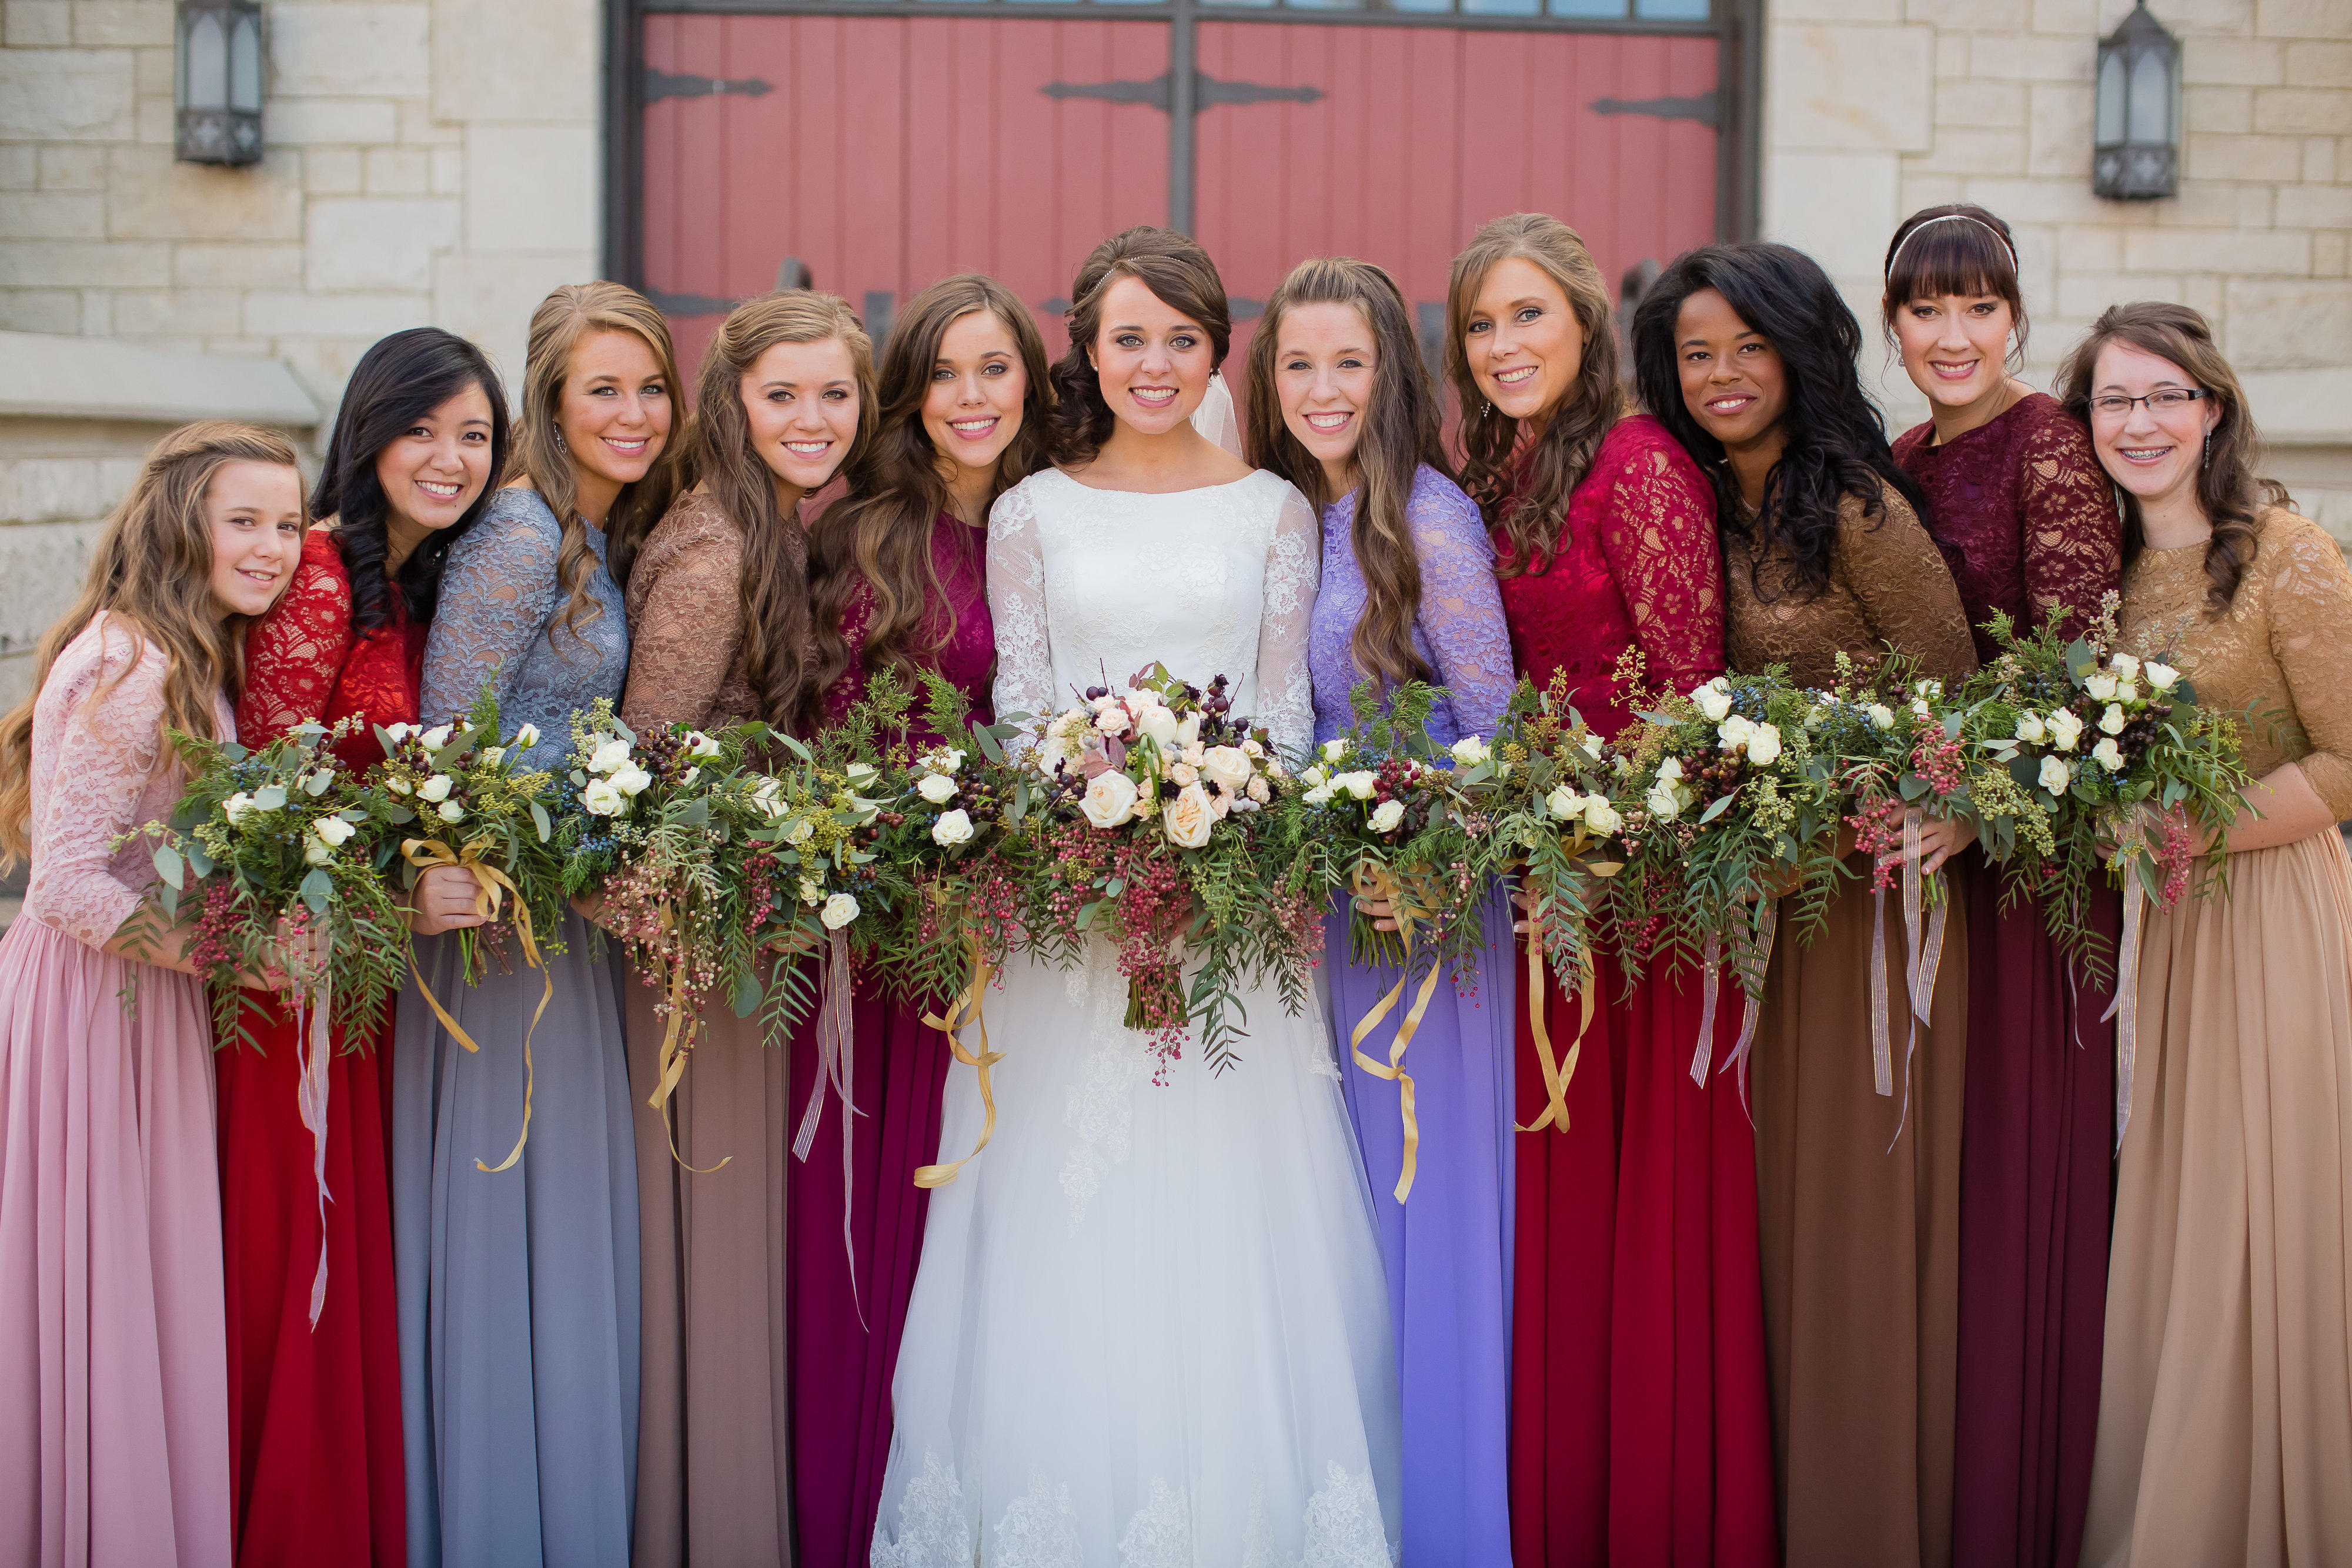 Duggar Girls Wedding Dresses See All The Beautiful Gowns